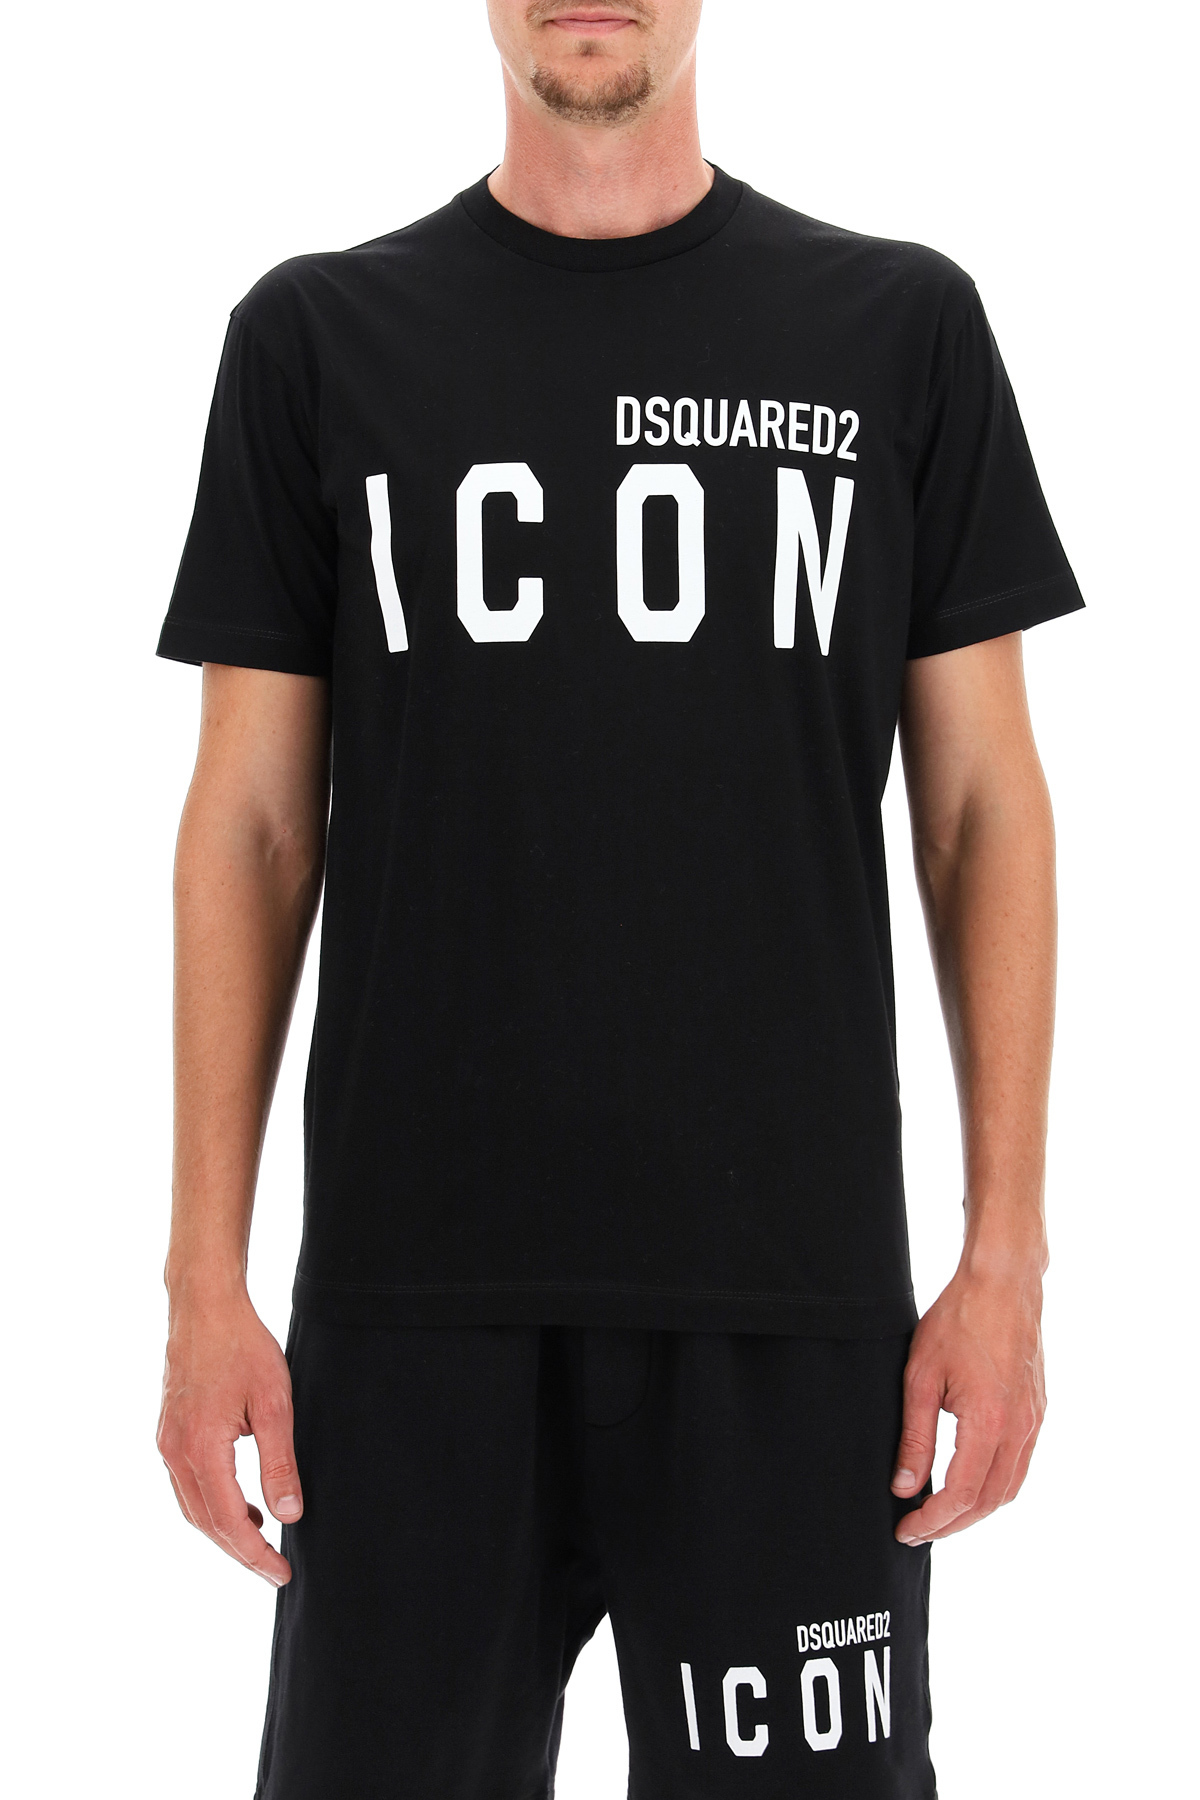 Dsquared2 t-shirt stampa icon